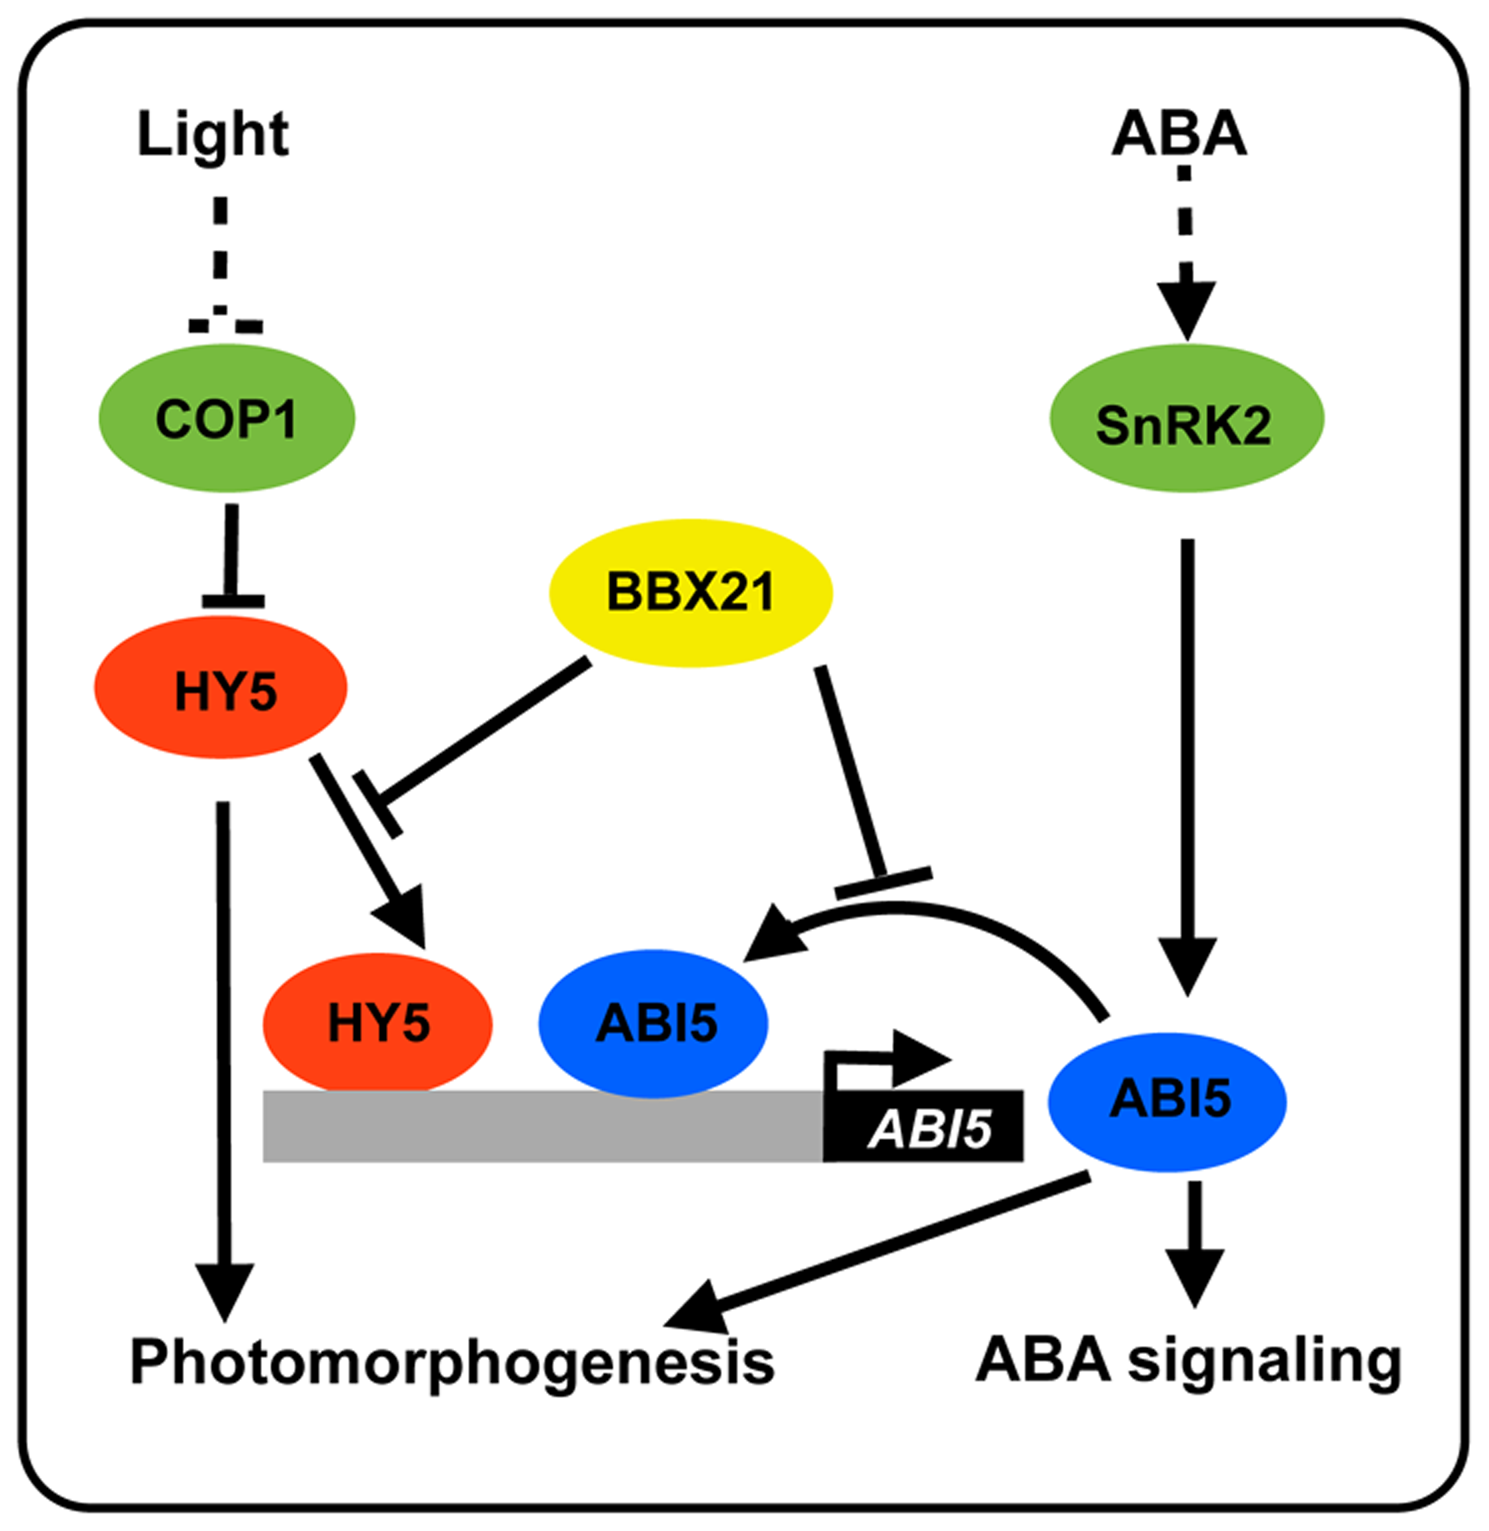 A working model depicting how BBX21 works in concert with HY5 and ABI5 on the <i>ABI5</i> promoter to integrate light and ABA signaling.